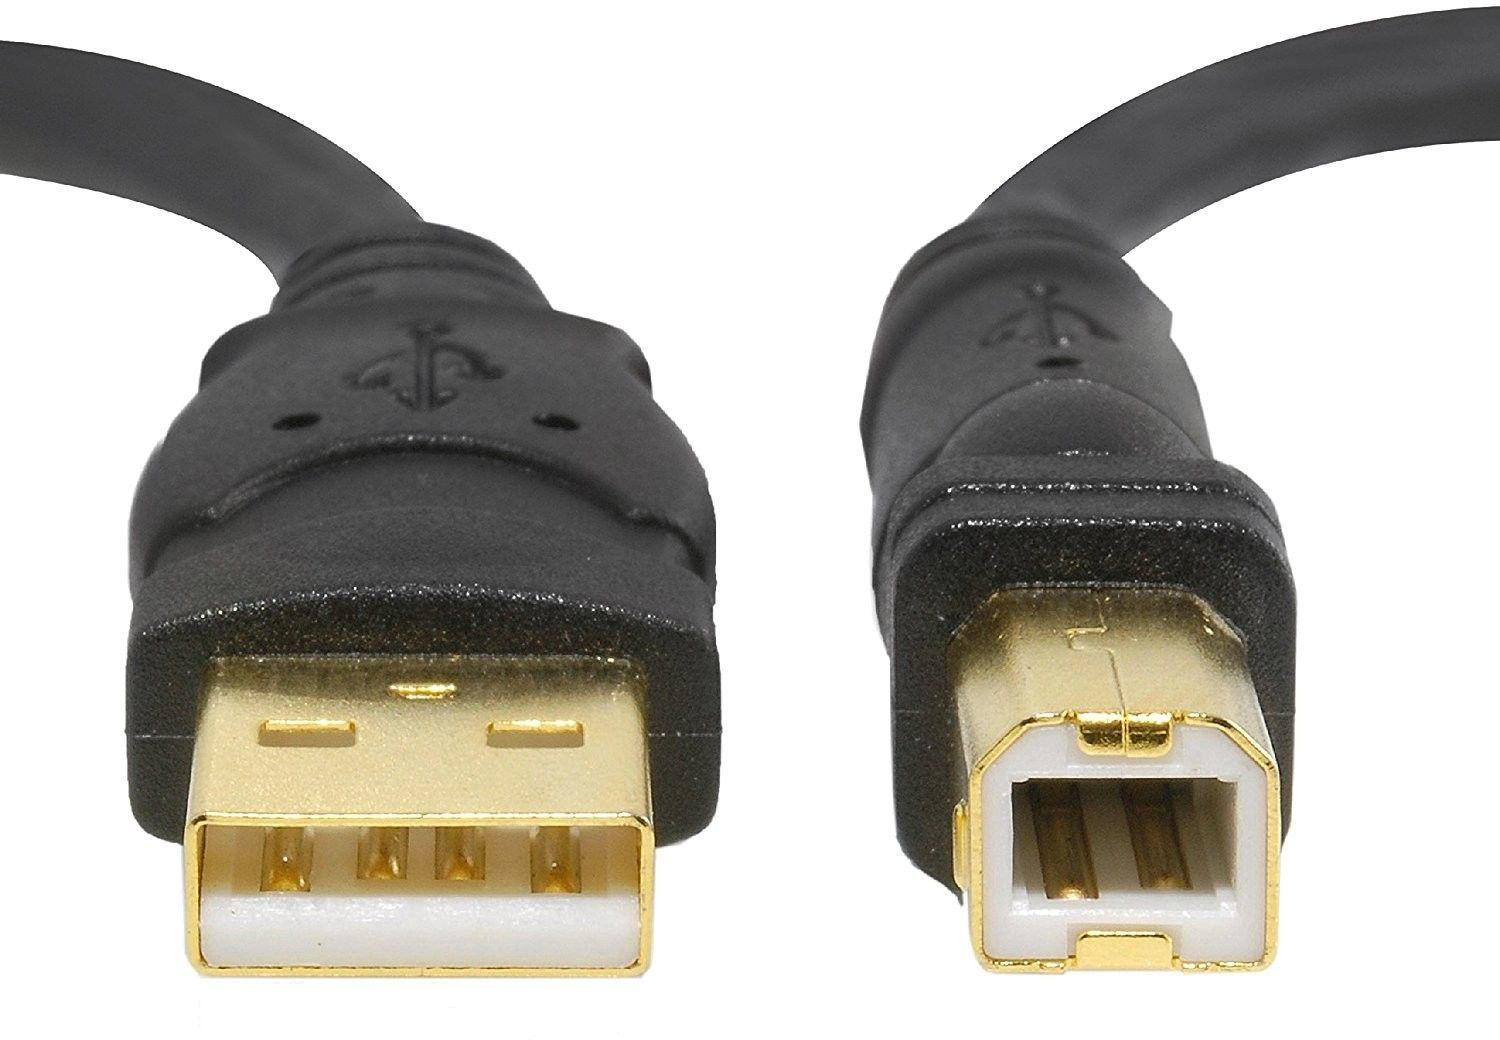 Mediabridge USB 2.0 - A Male To B Male Cable (10 Feet) - High-Speed W/ - Black image 3